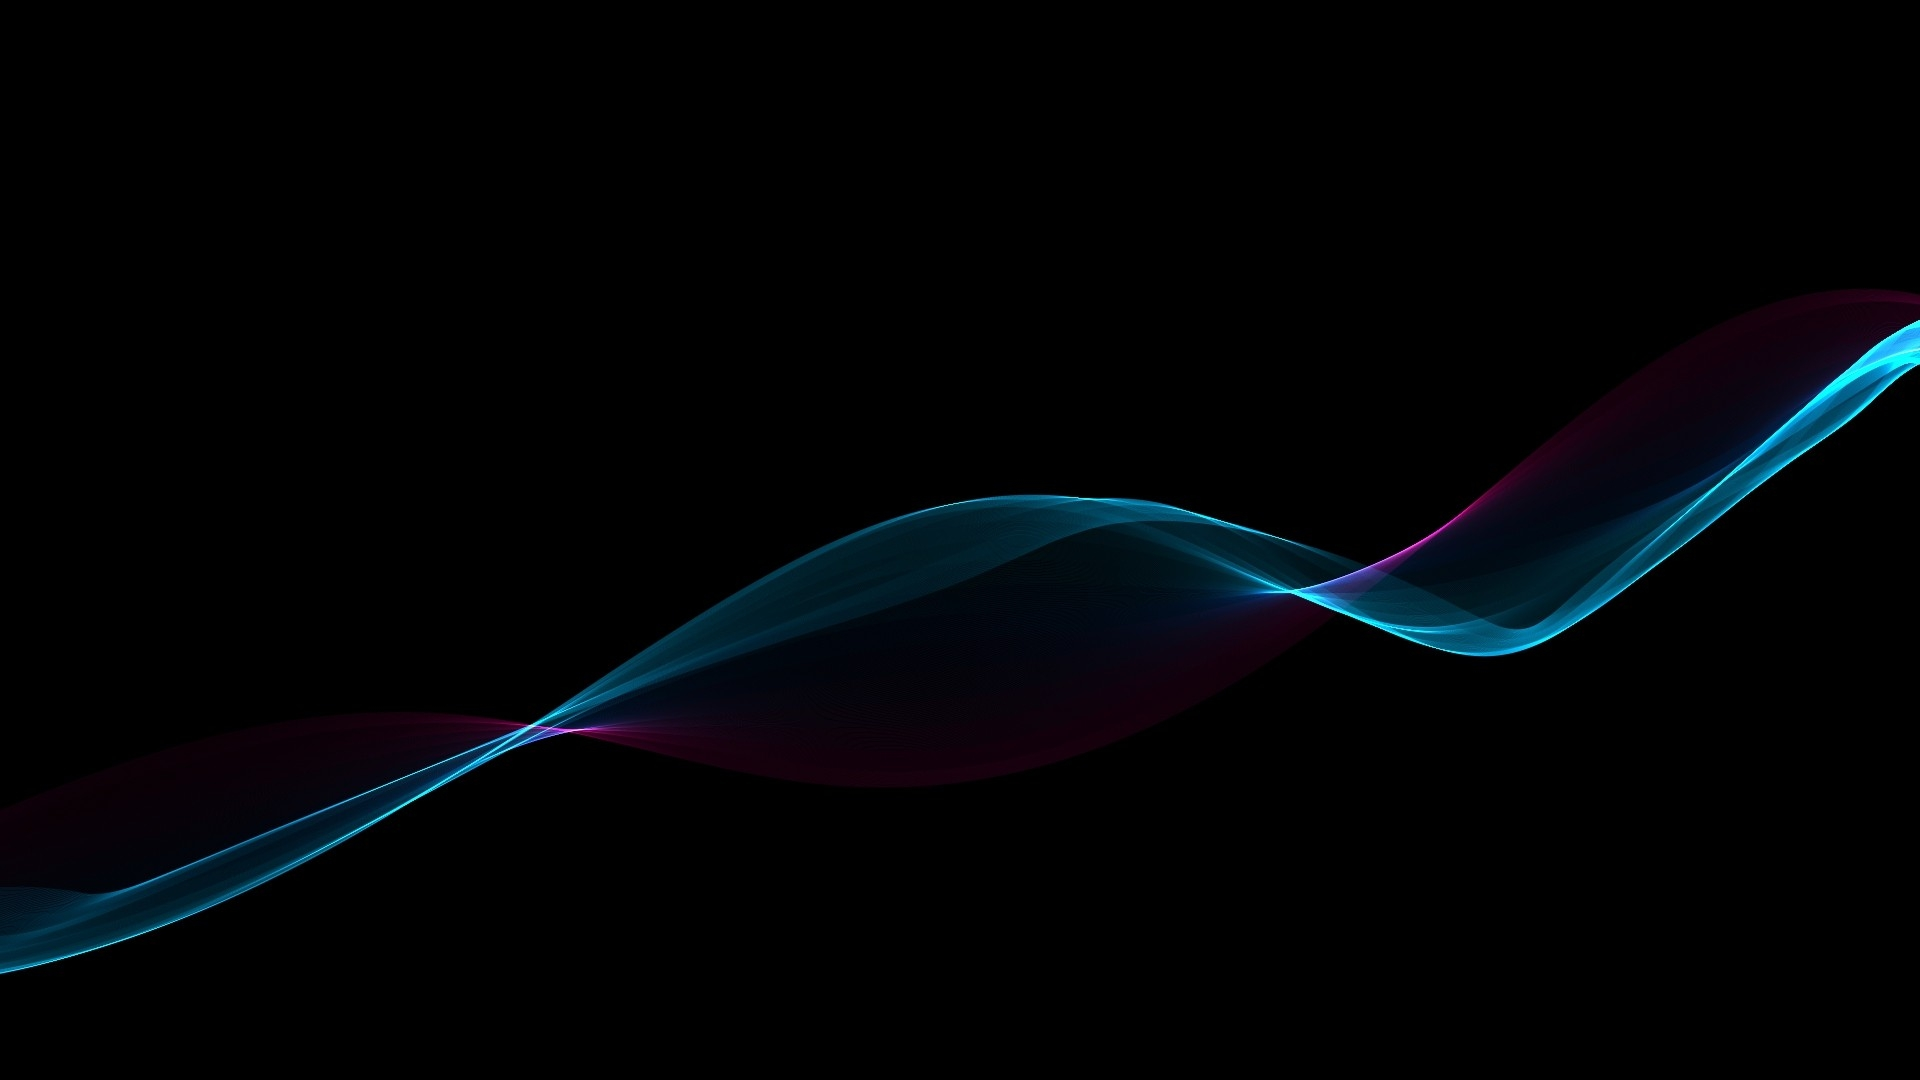 blue wallpaper database border large dark color background 1920x1080